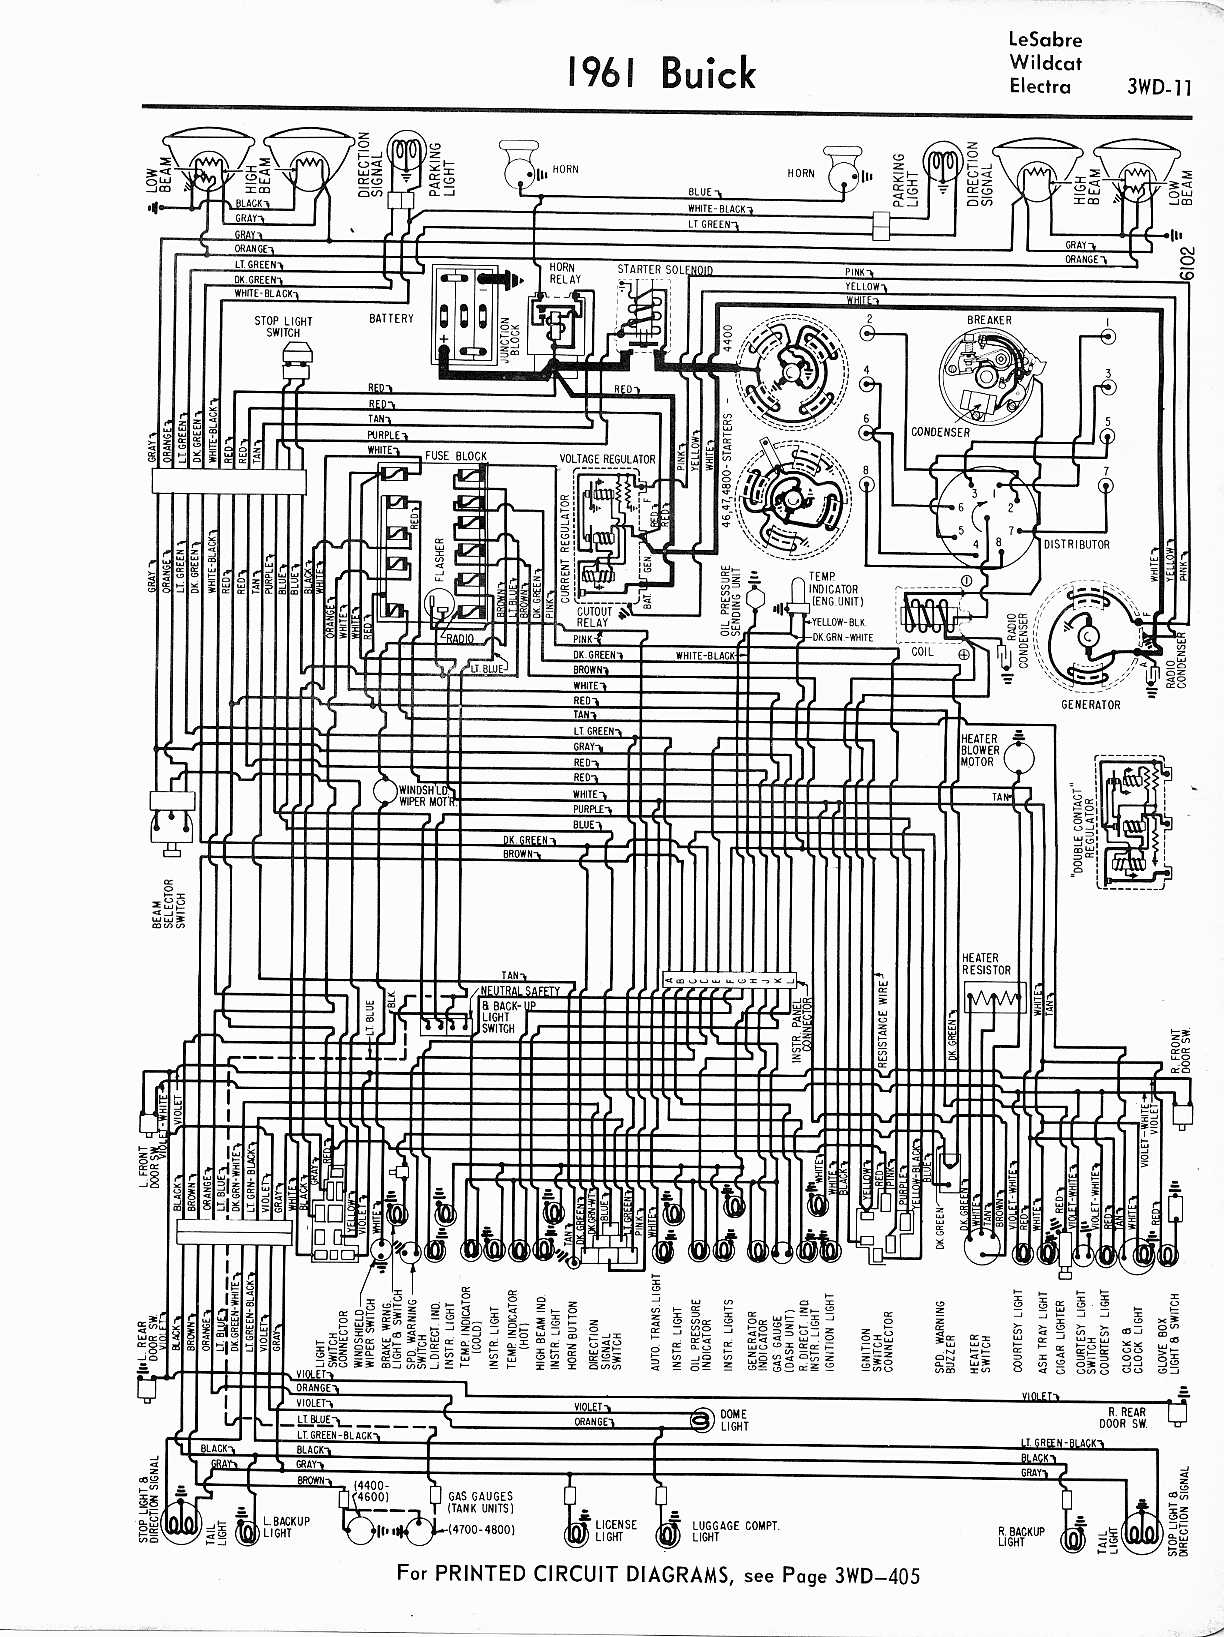 MWireBuic65_3WD 011 buick wiring diagrams 1957 1965 2002 buick century wiring diagram at alyssarenee.co